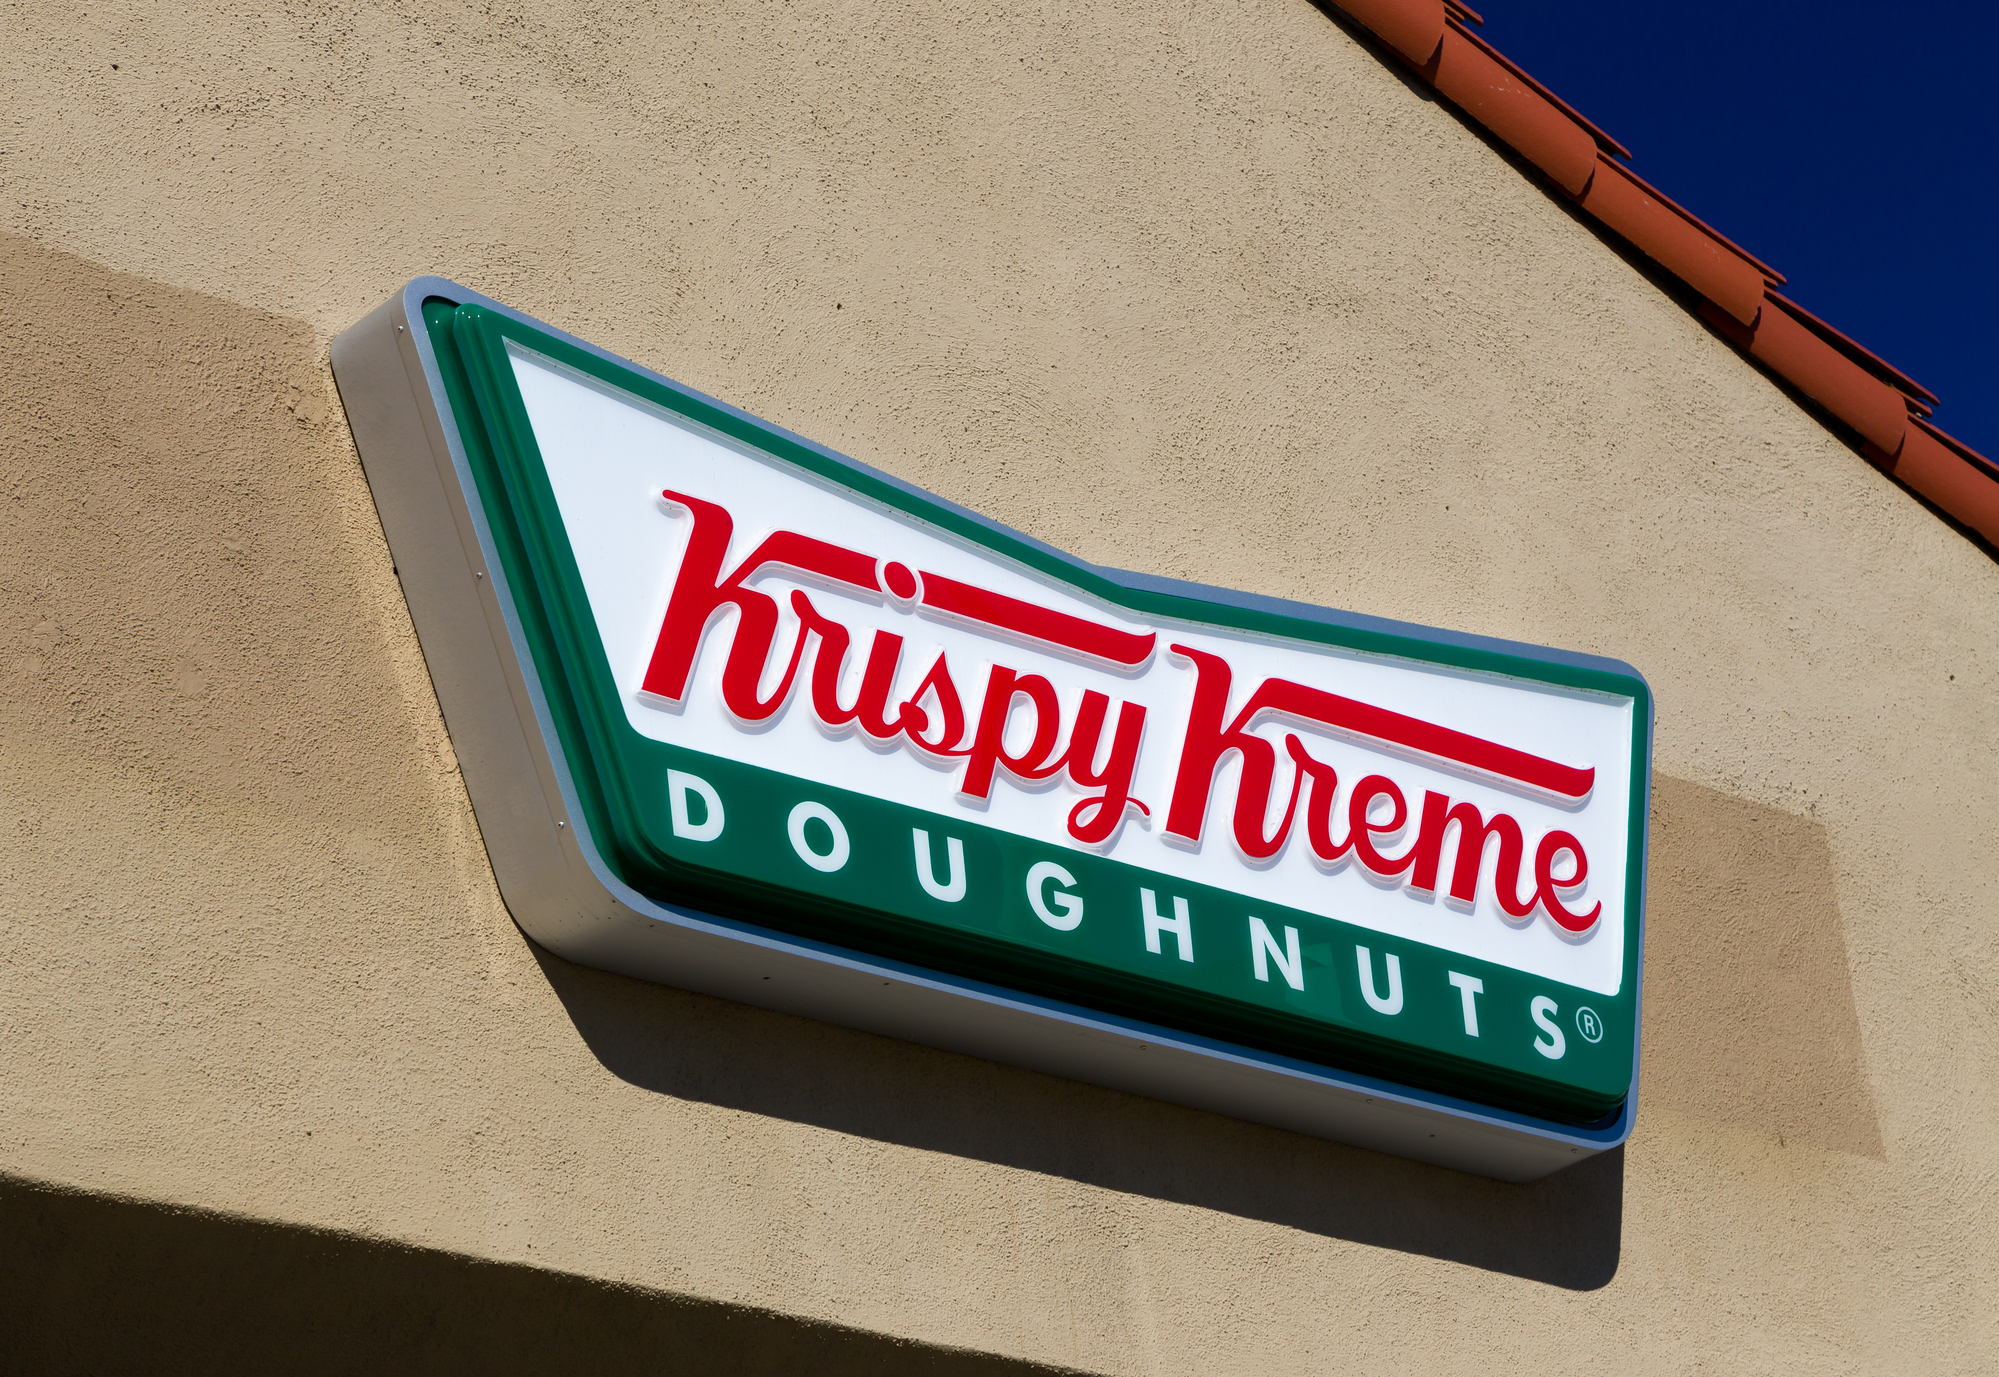 Catonsville Krispy Kreme Gives Free Doughnuts to Healthcare Staff